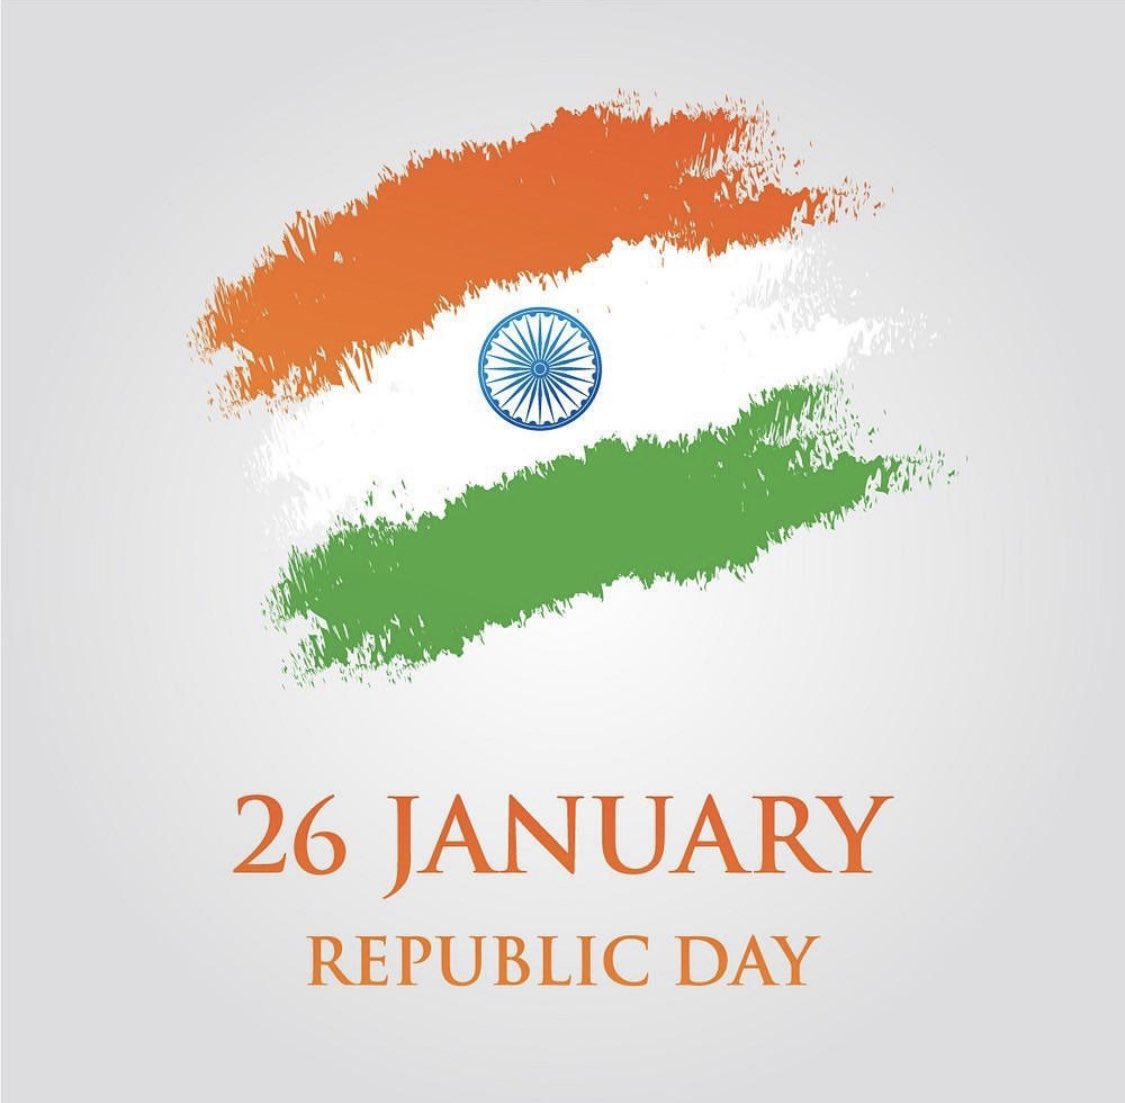 A thousand salutes to the great nation of ours. May it become even more prosperous. Wish you a very Happy Republic Day!! 🇮🇳 🇮🇳